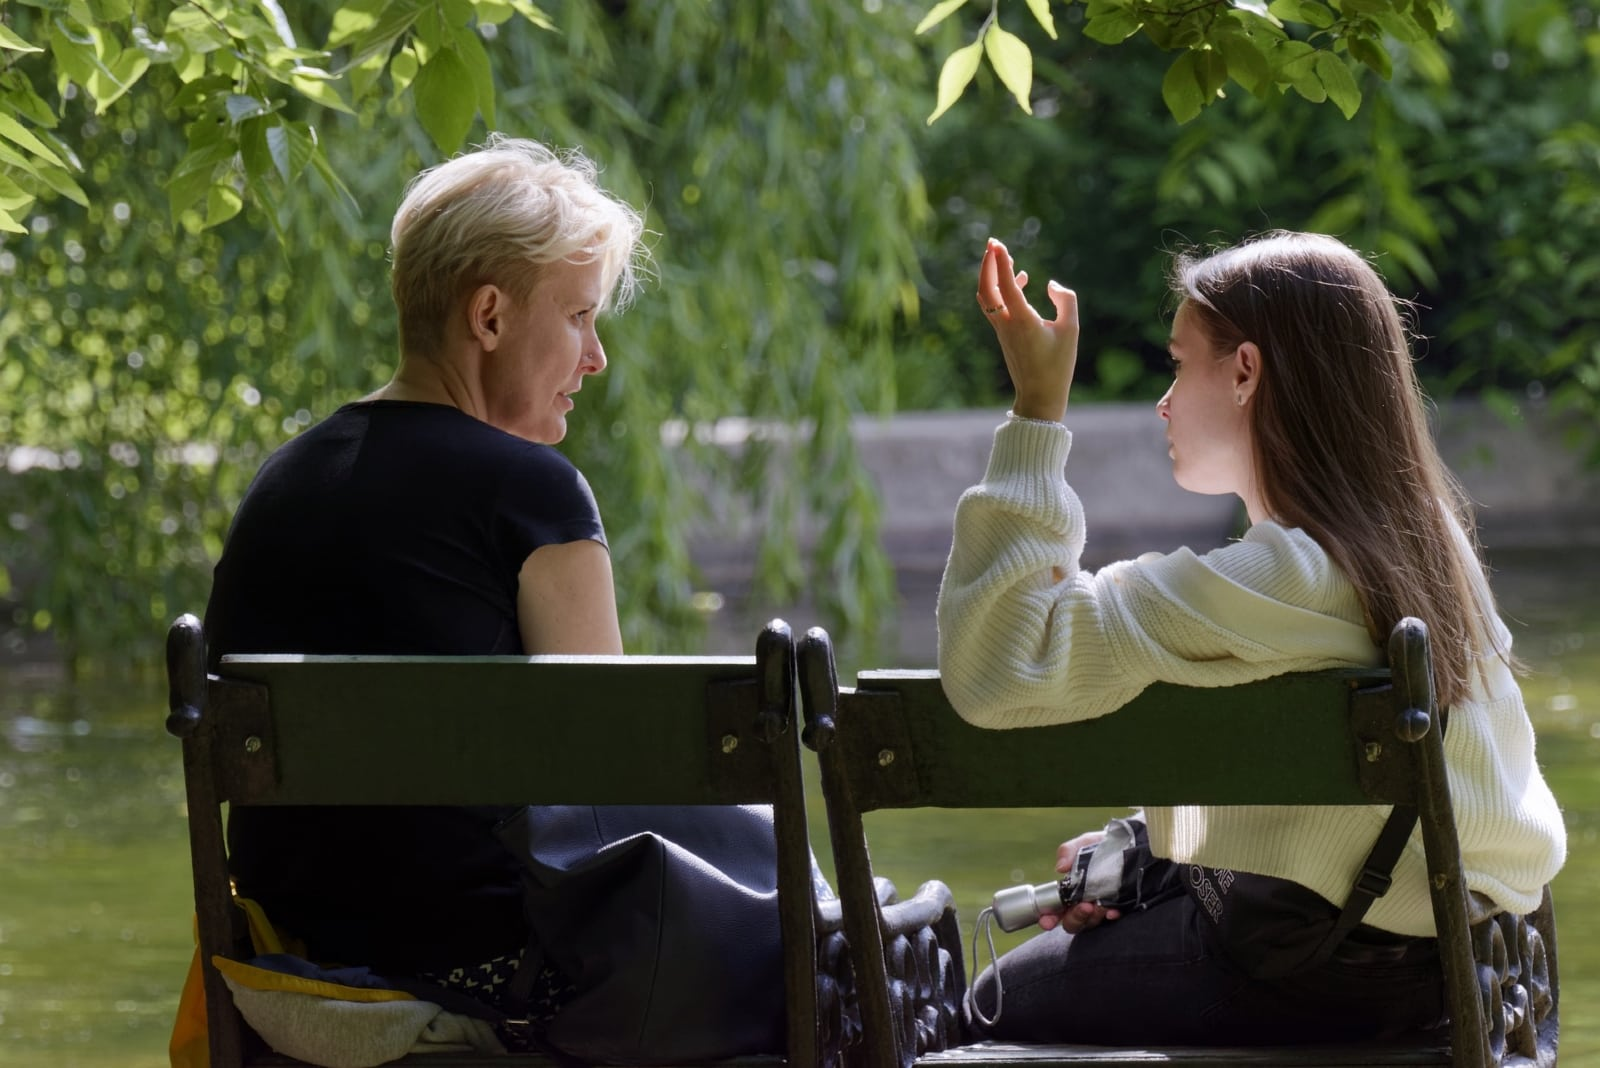 daughter talking to mother while sitting on bench